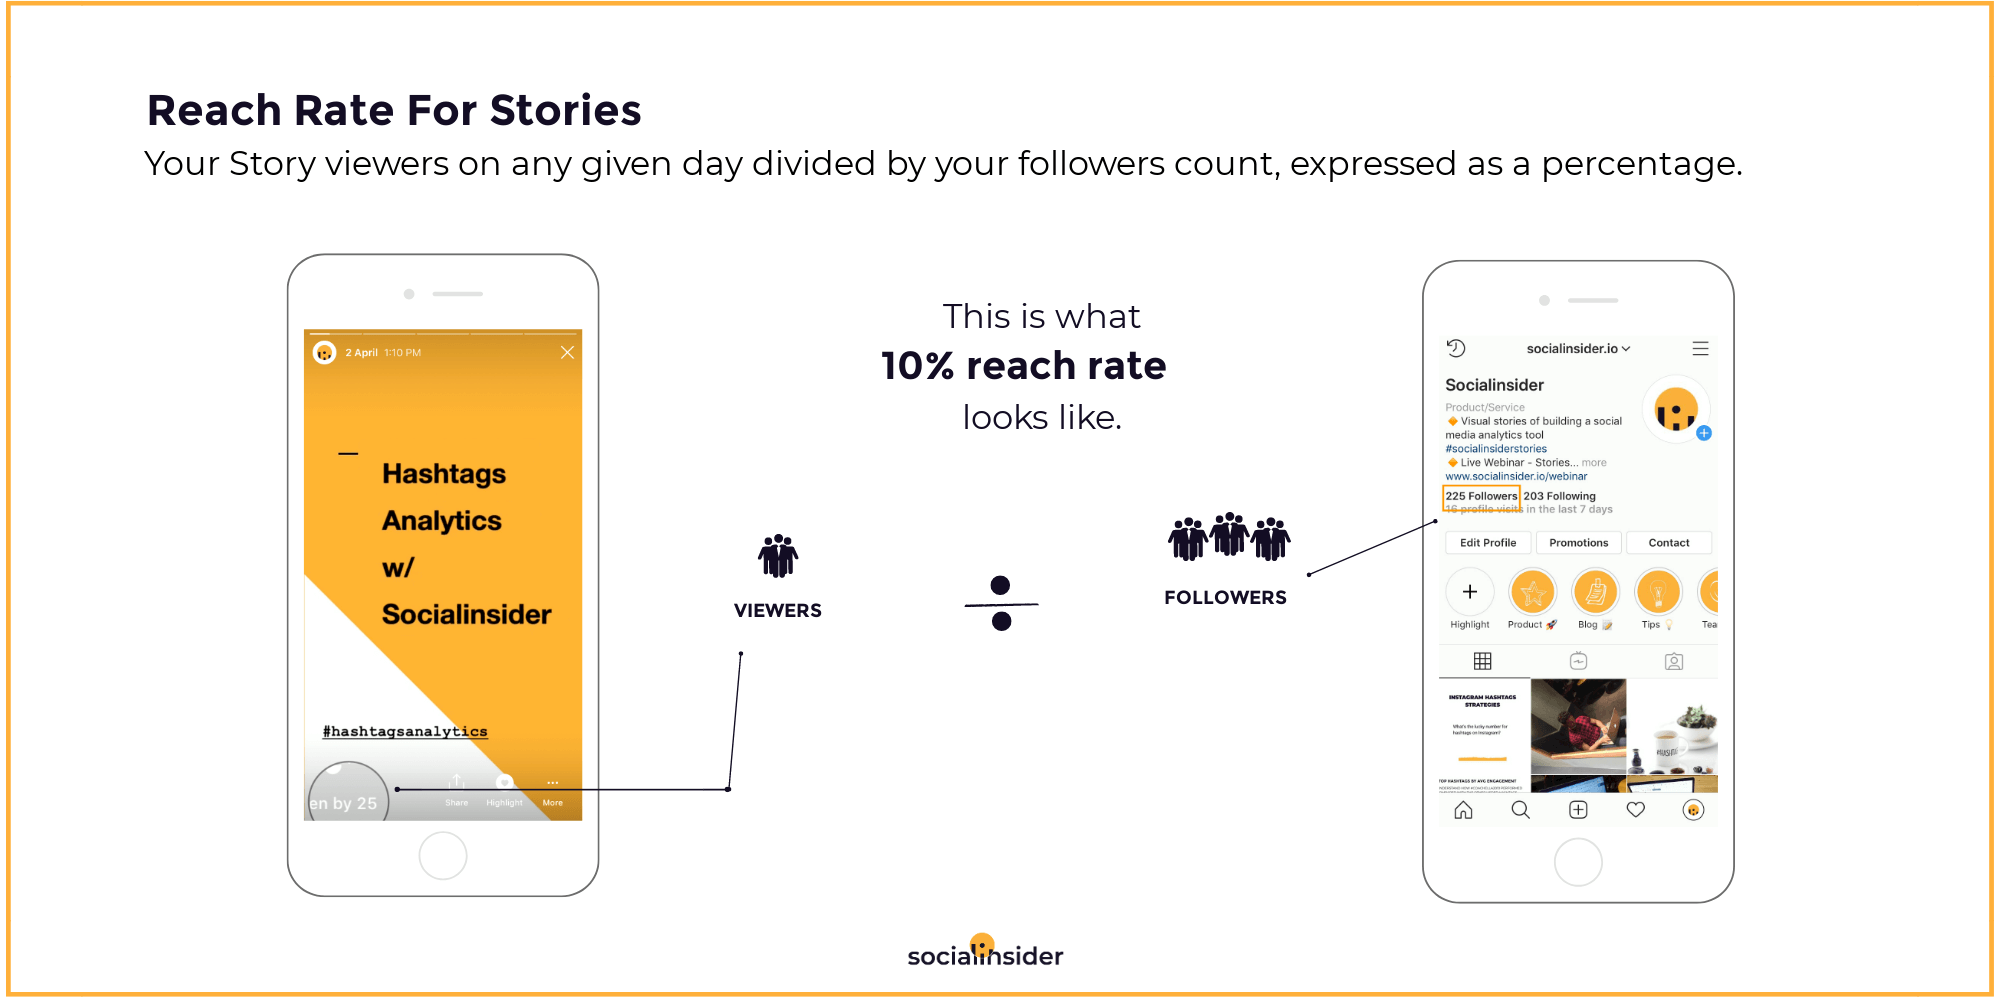 Here's how reach rate is computed in Stories